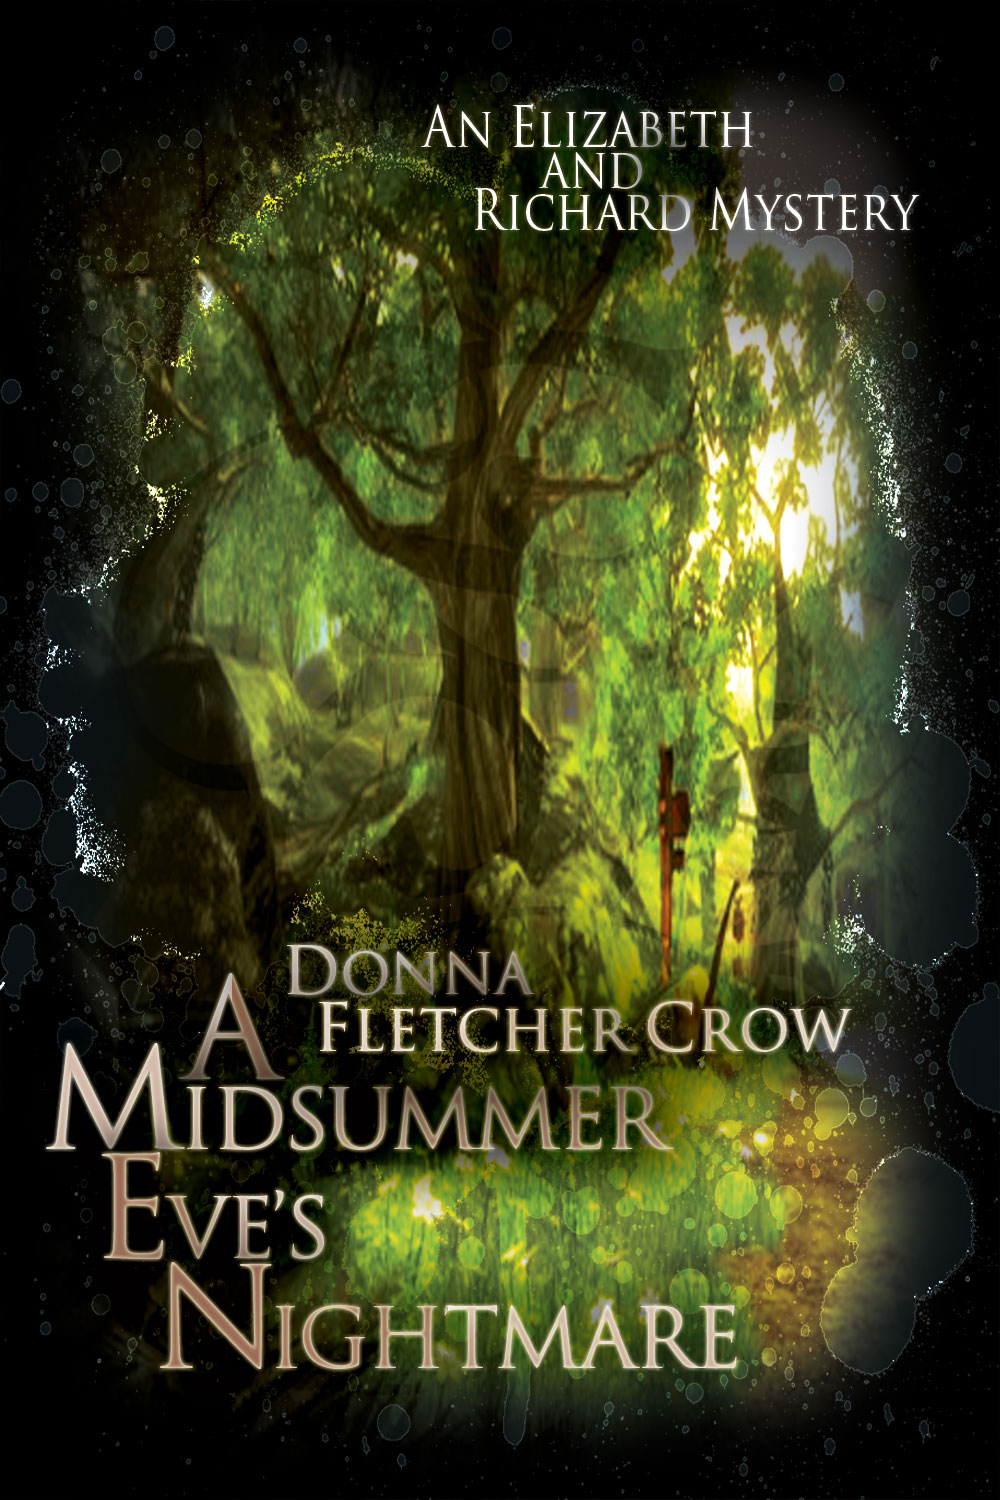 A Midsummer Eve's Nightmare (For fans of Lesley Cookman, and Sir Arthur Conan Doyle) By: Donna Fletcher Crow